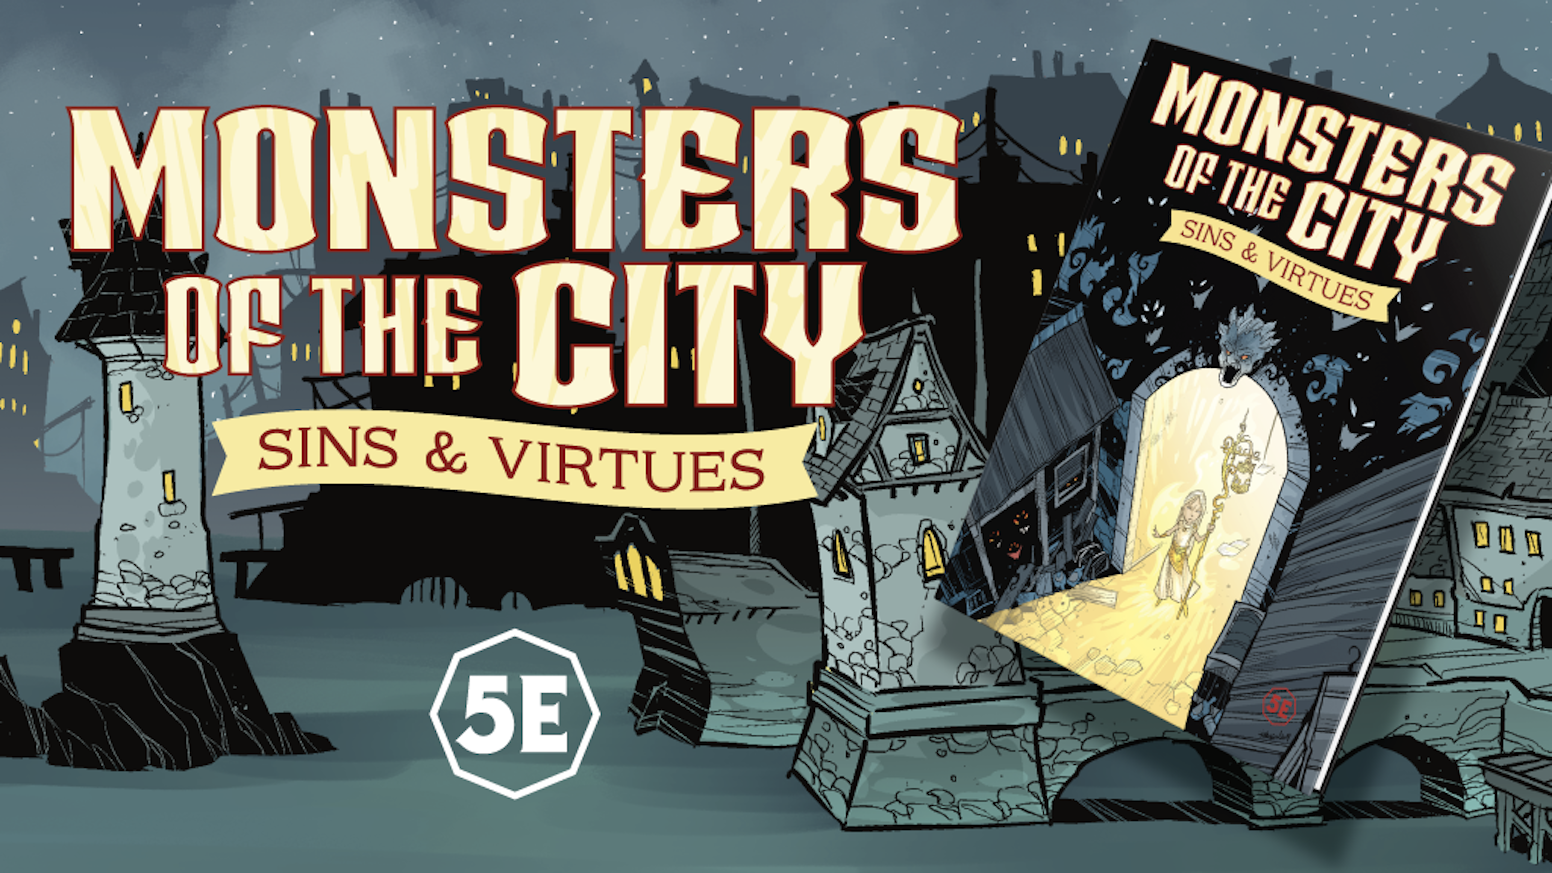 Seven Sins, Seven Virtues, Seven Districts in the city! It's time to choose a side! A 5th Edition monster book with 100 new creatures